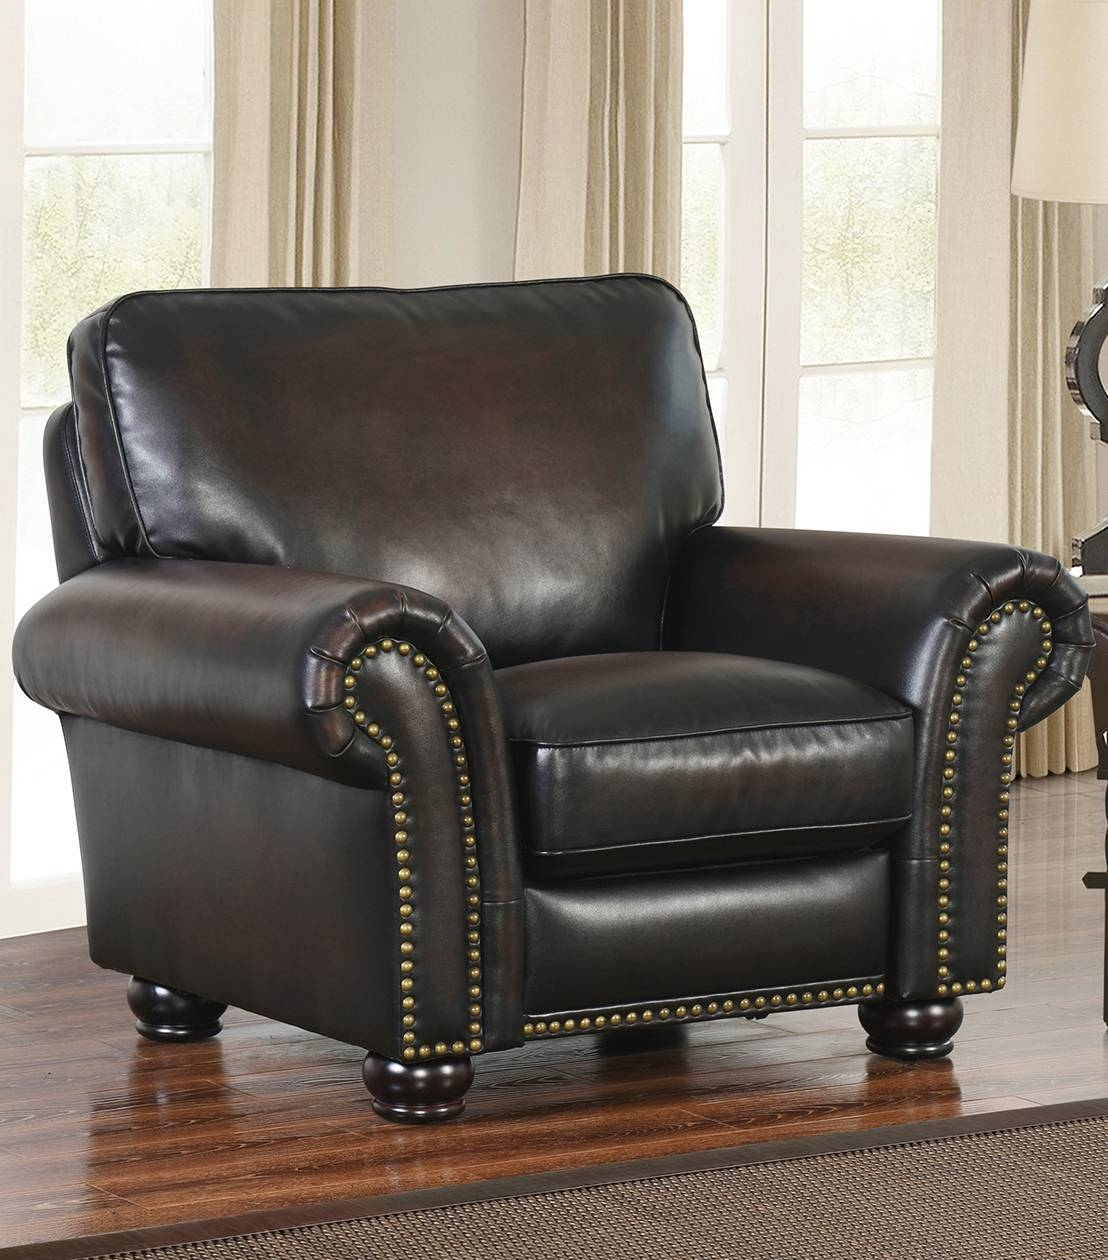 Recliners : Braxton Leather Pushback Recliner Pertaining To Abbyson Recliners (View 12 of 15)